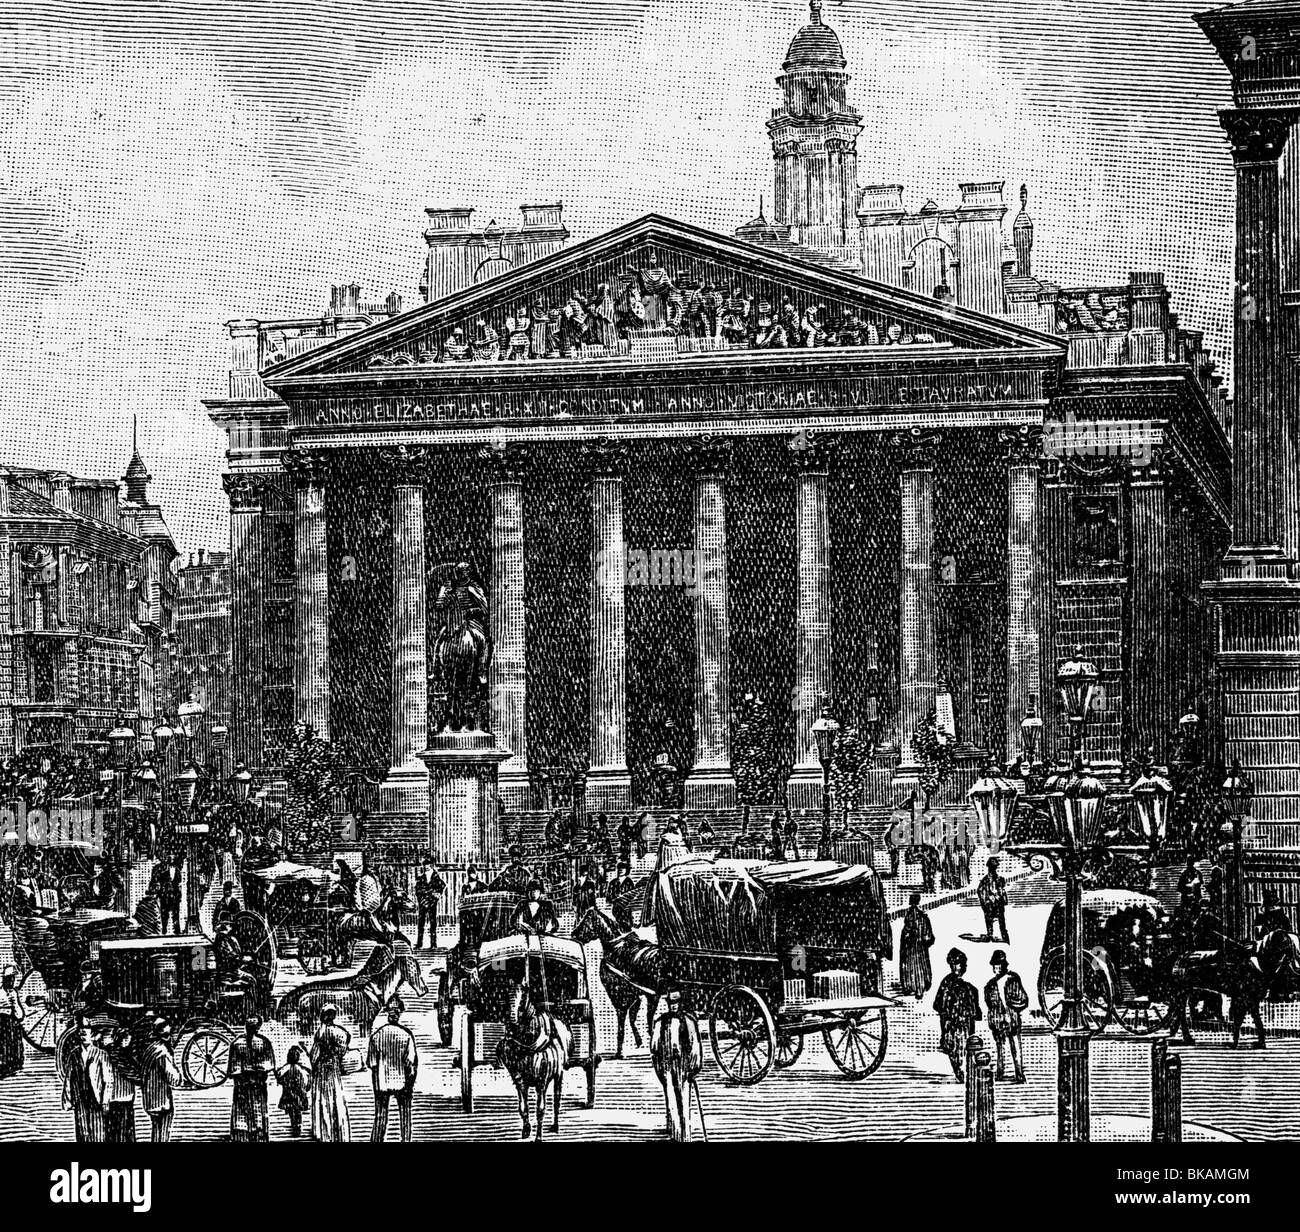 geography / travel, Great Britain, London, Royal Exchange, built 1842 - 1844, architect: Sir William Tite, exterior - Stock Image